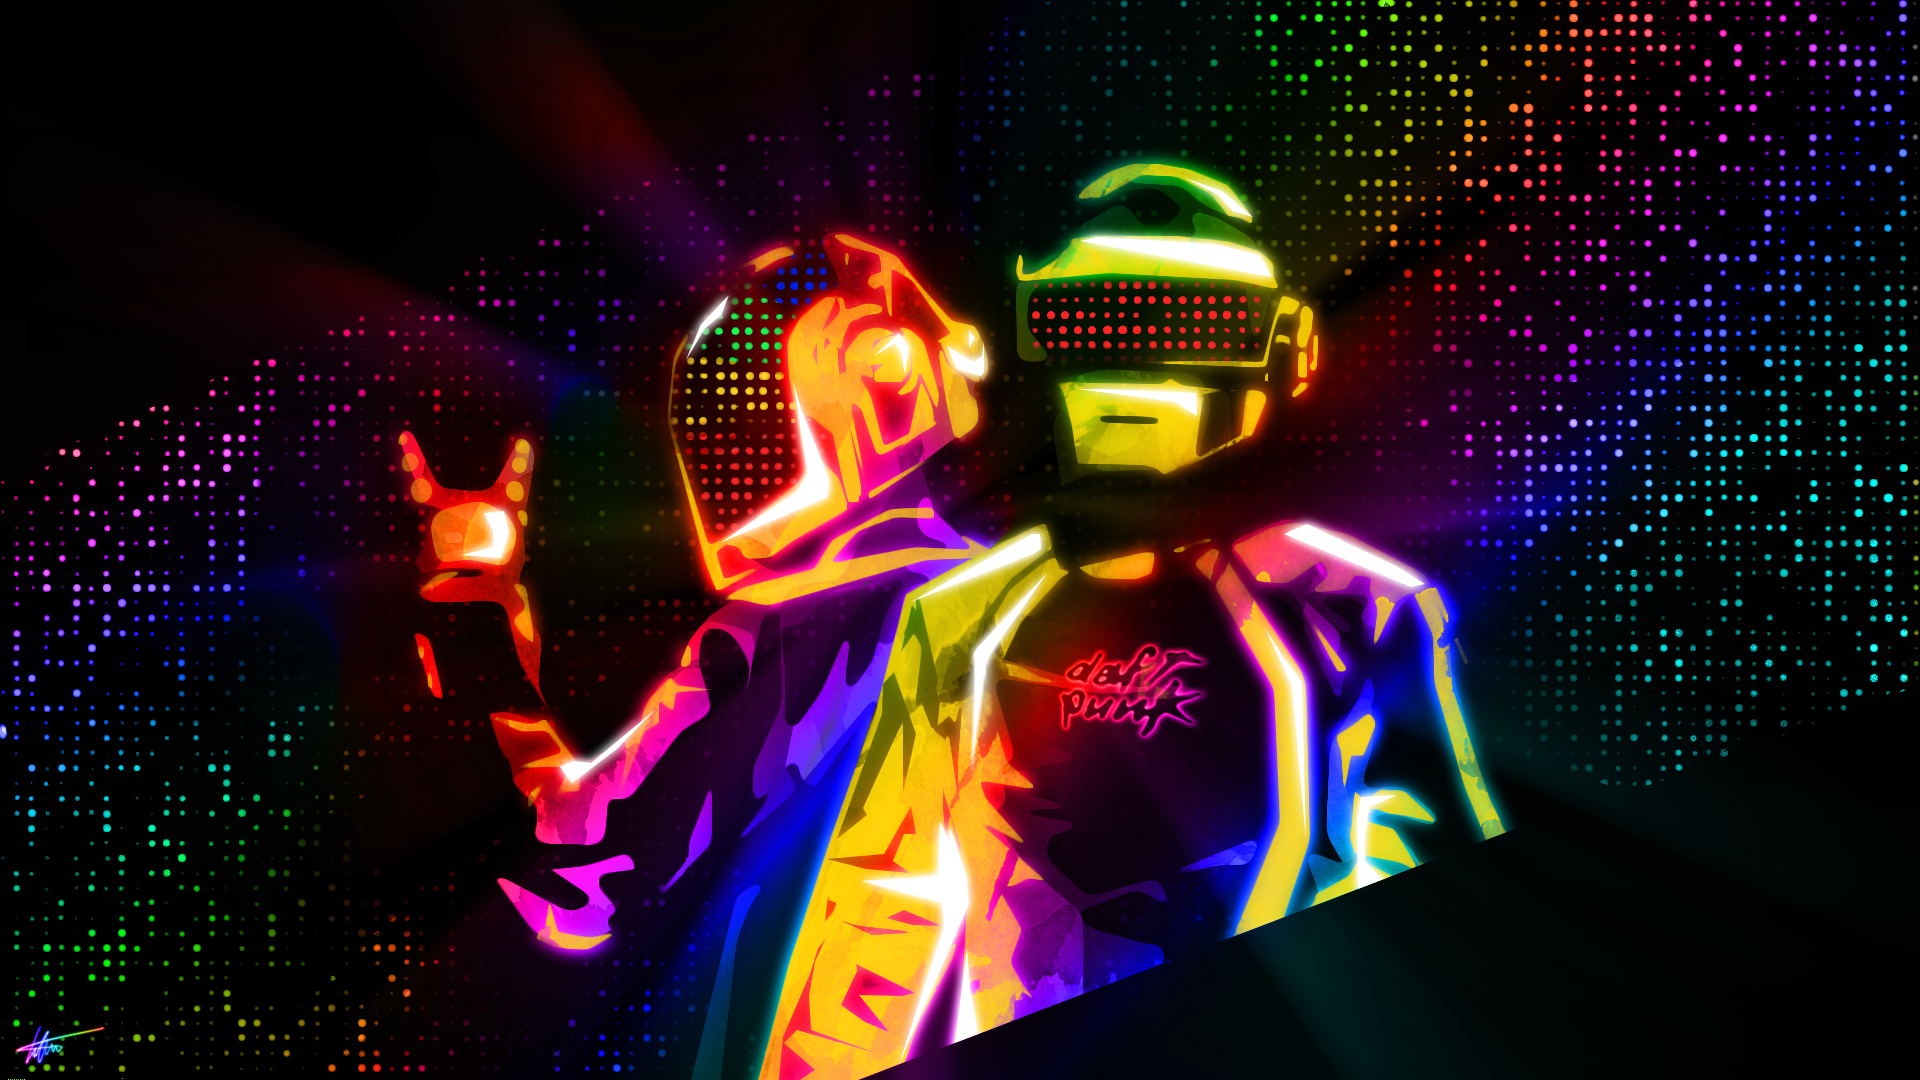 Amazing High Quality Daft Punk Pictures & Backgrounds Collection